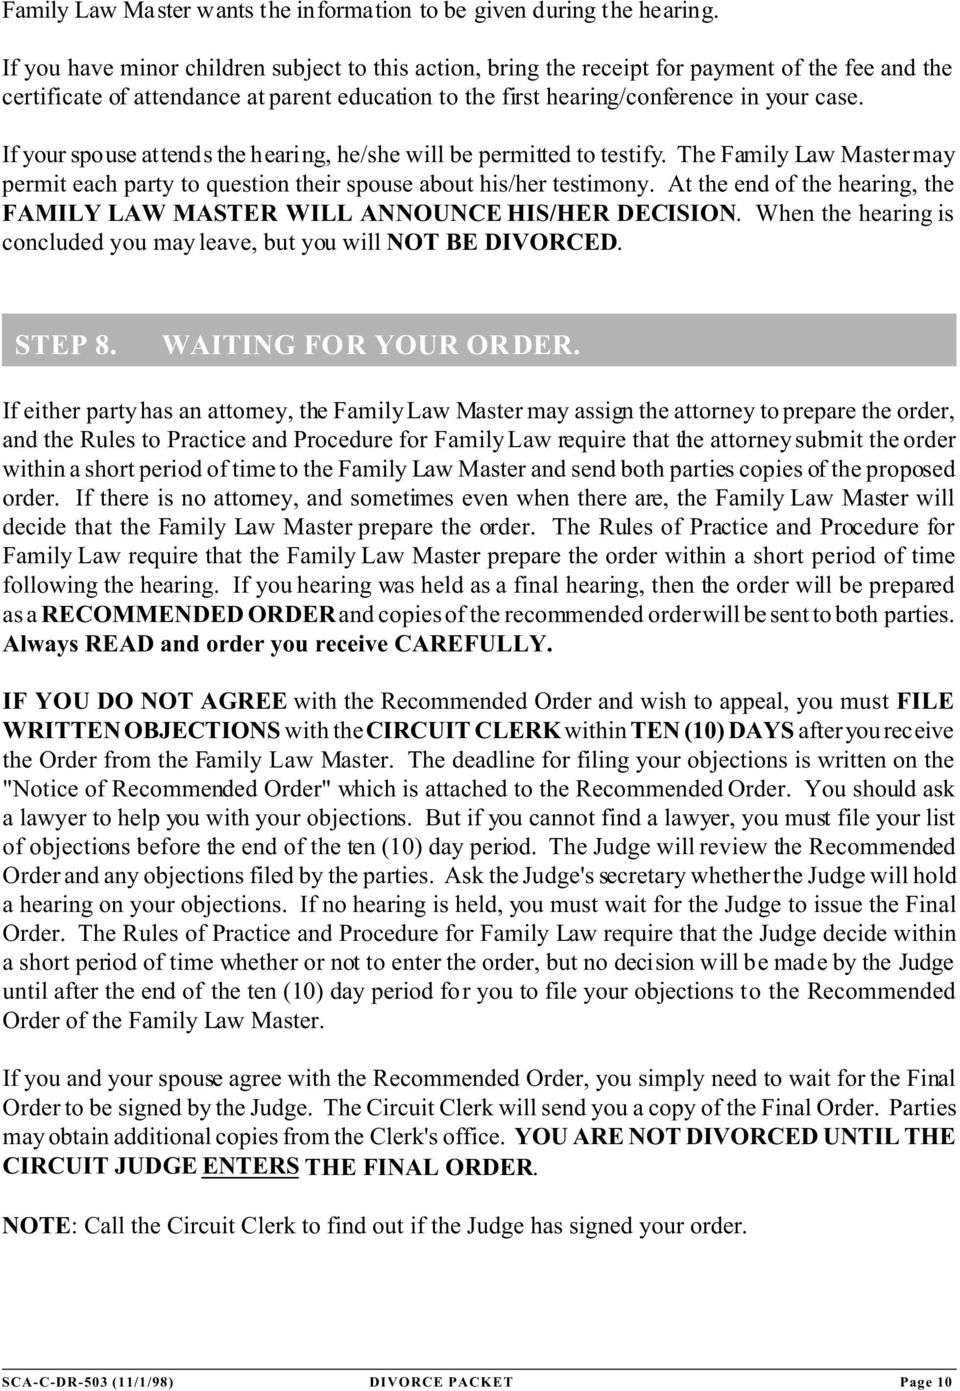 If your spouse attends the hearing, he/she will be permitted to testify. The Family Law Master may permit each party to question their spouse about his/her testimony.